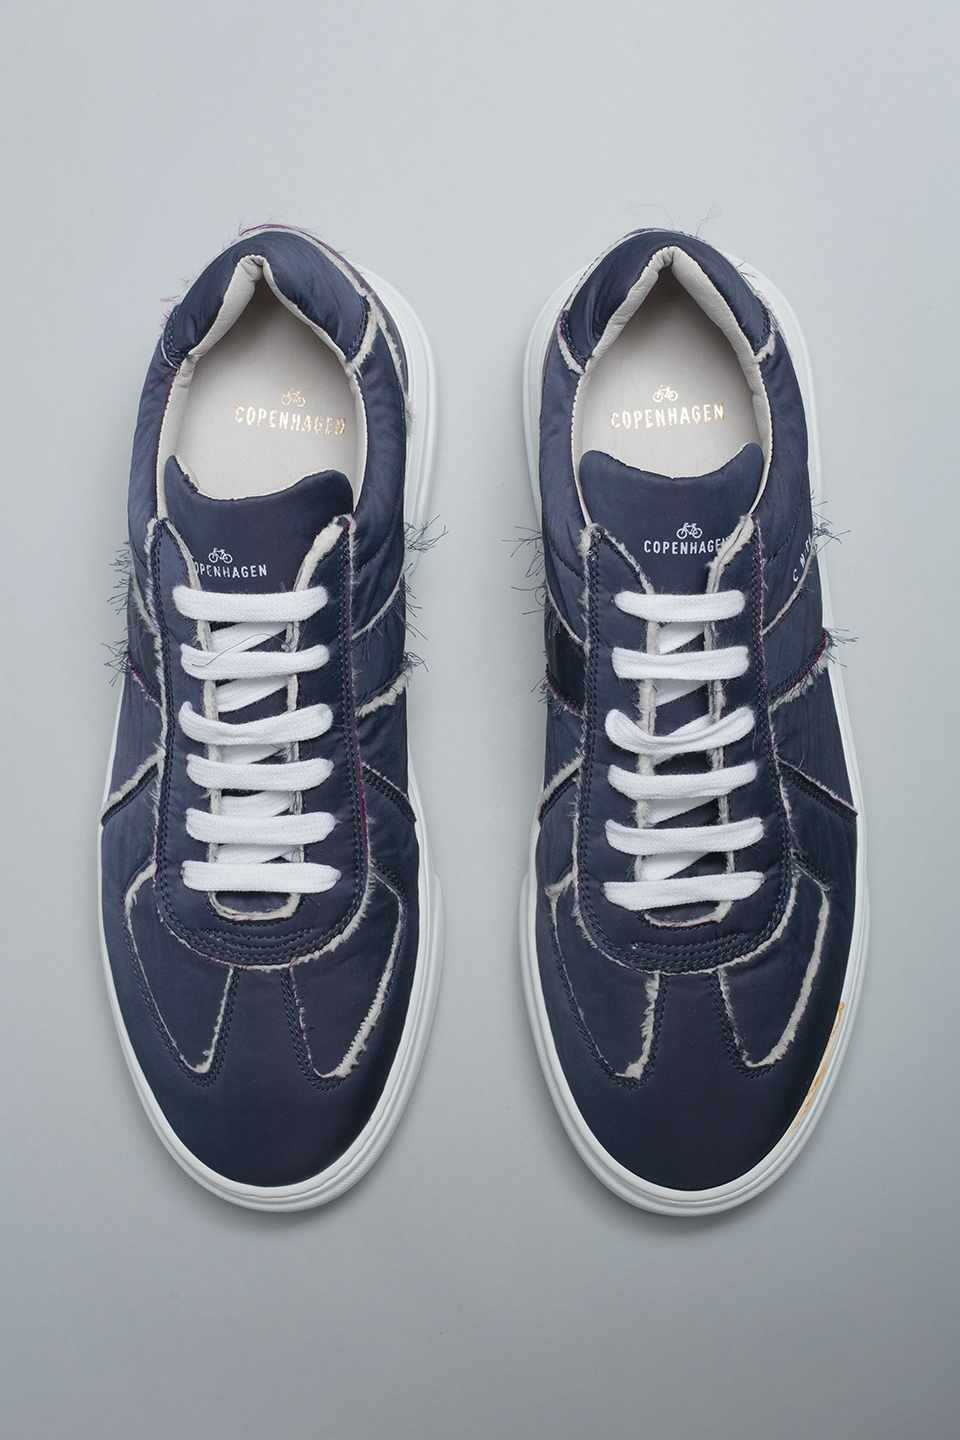 CPH133M nylon navy - alternative 3